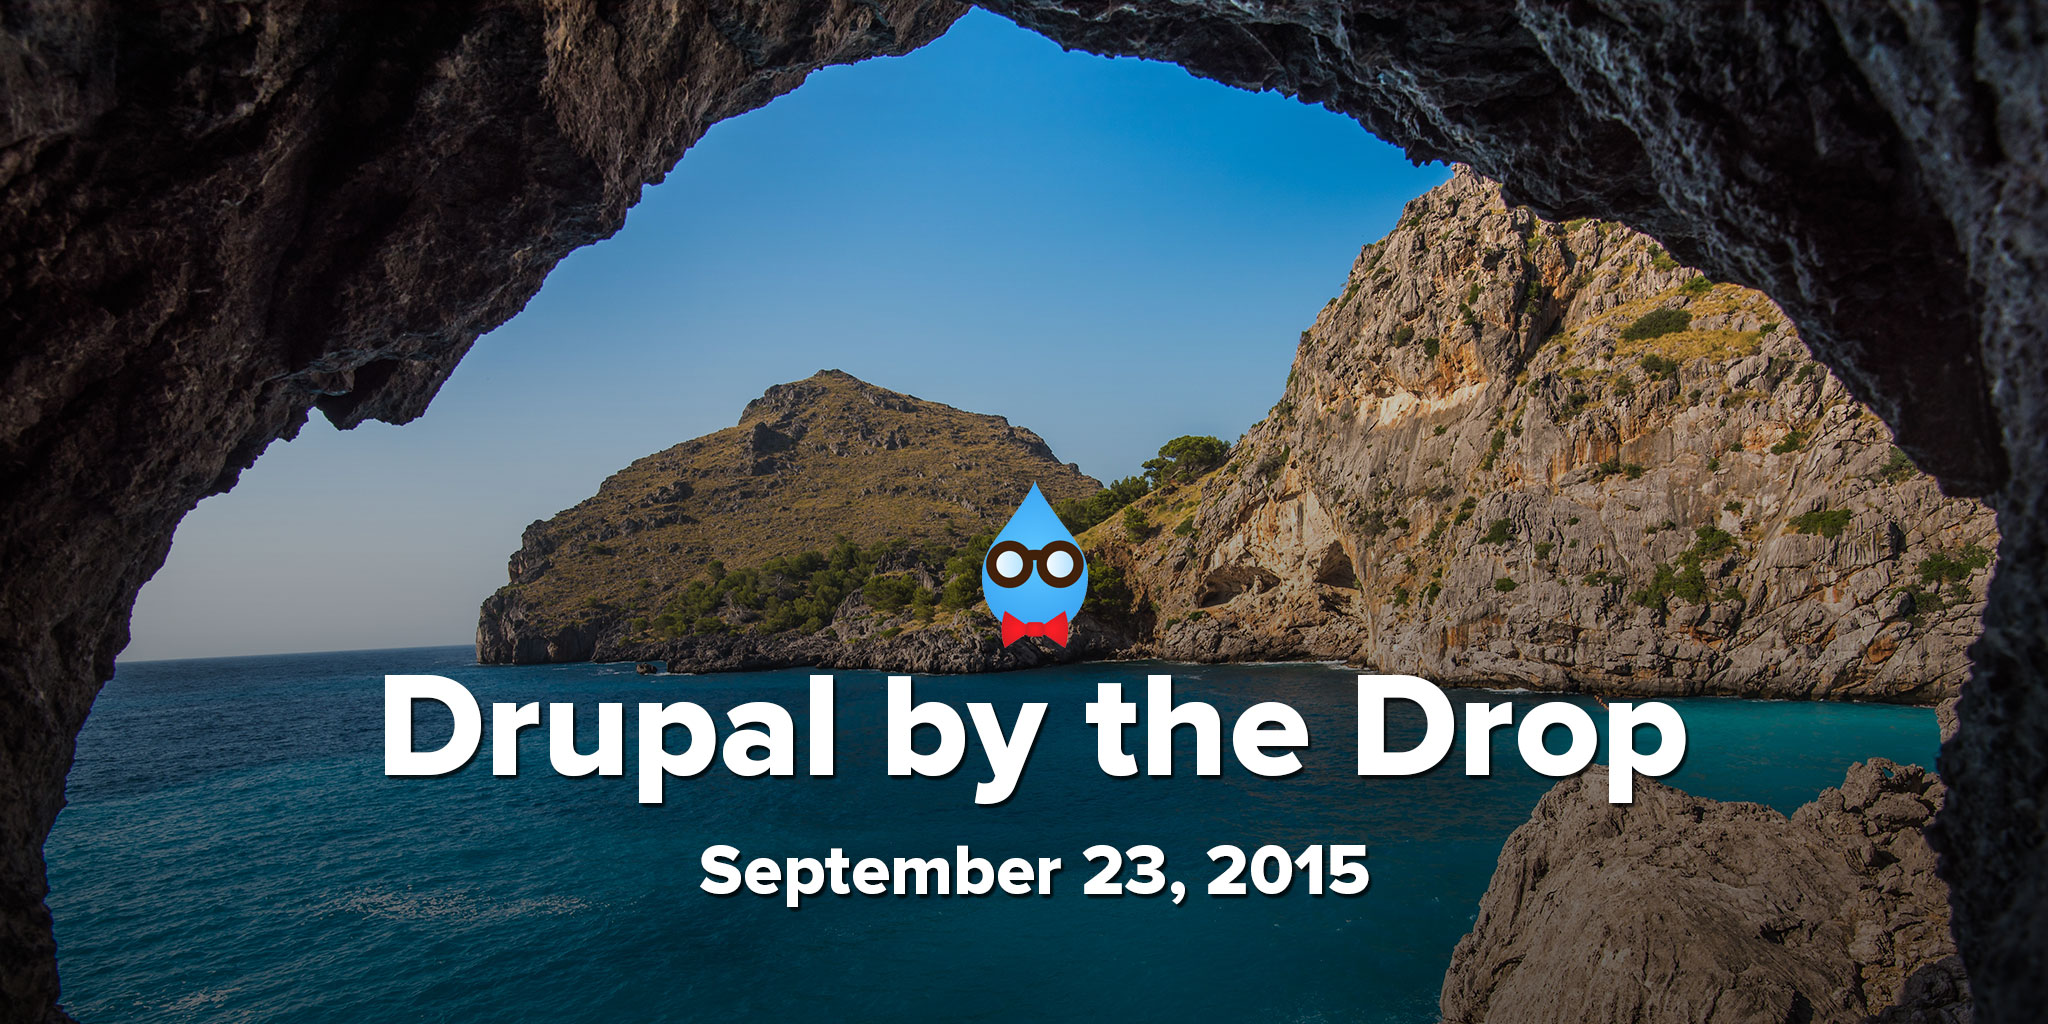 Drupal by the Drop: September 23, 2015